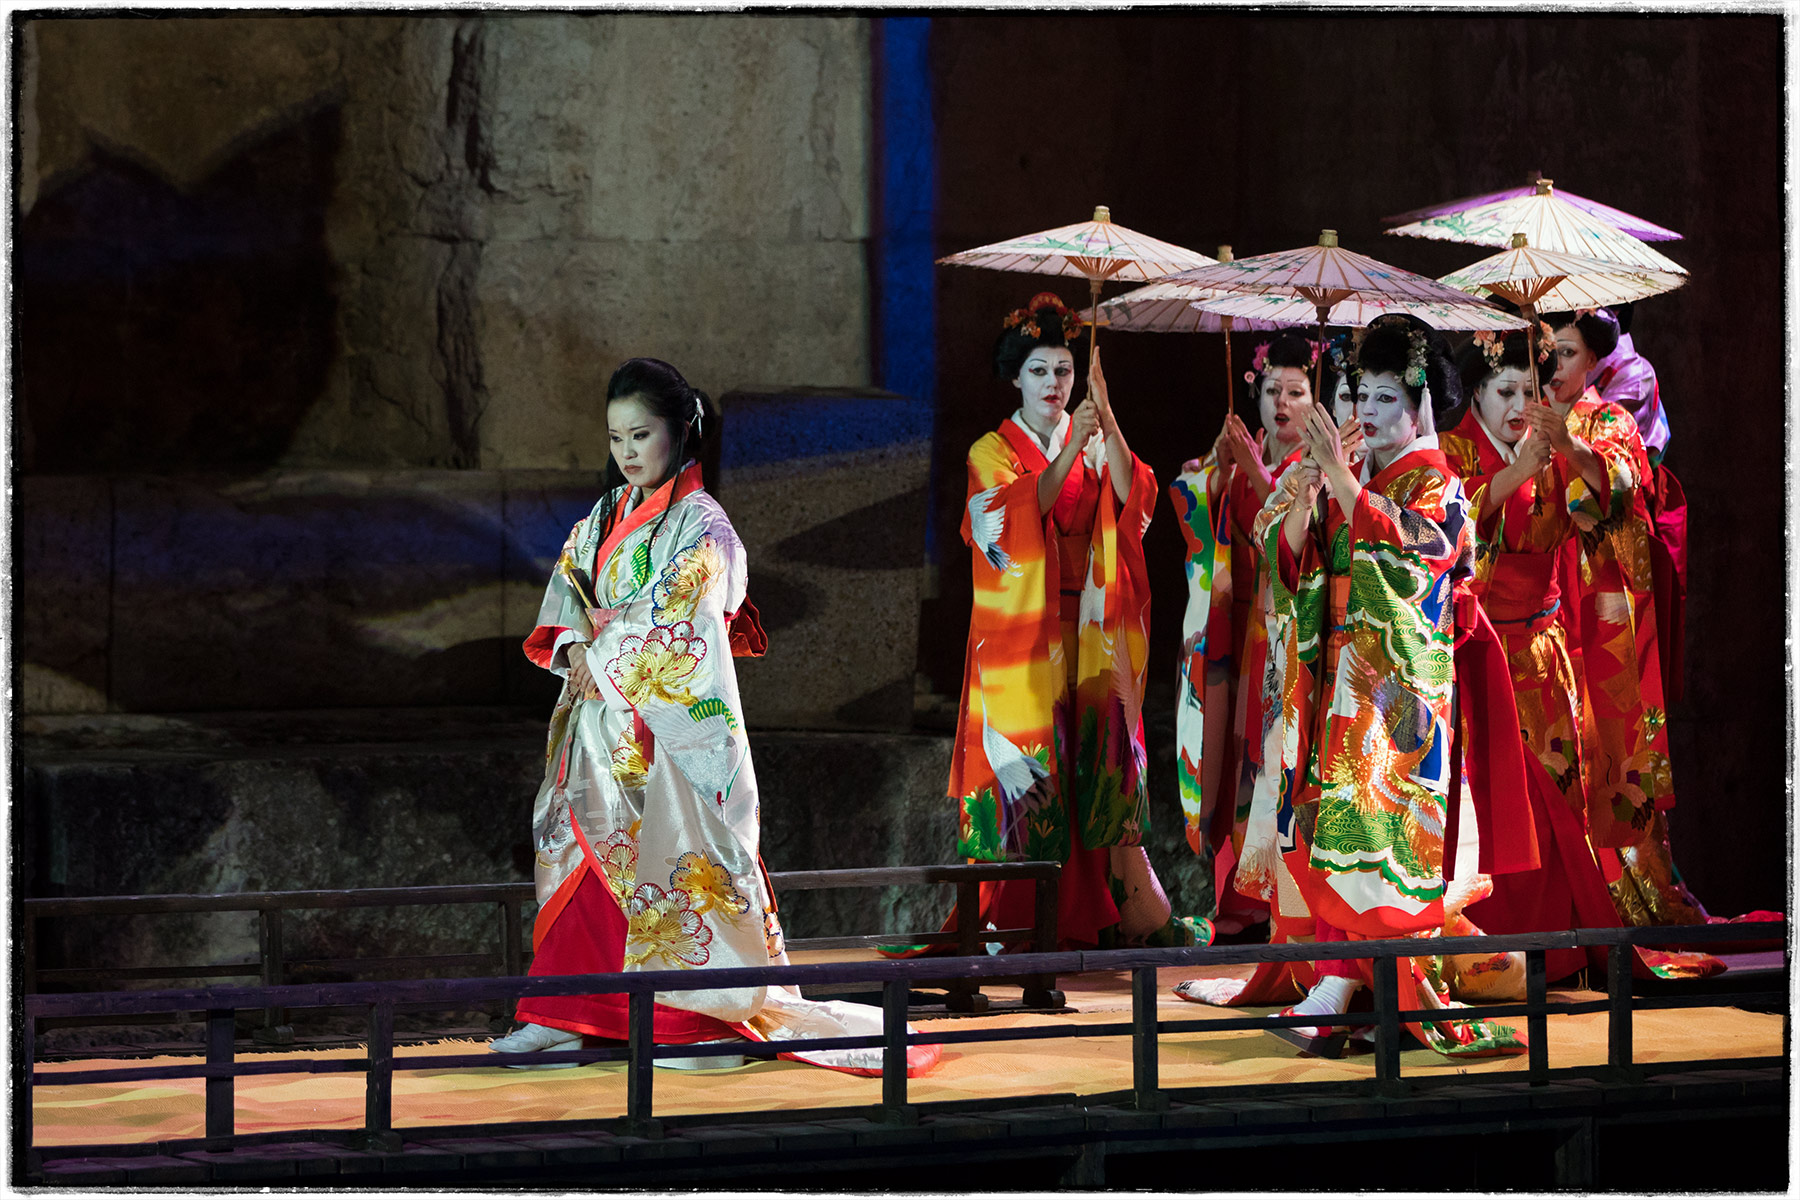 Madame Butterfly: Madame Butterfly (Theatre)